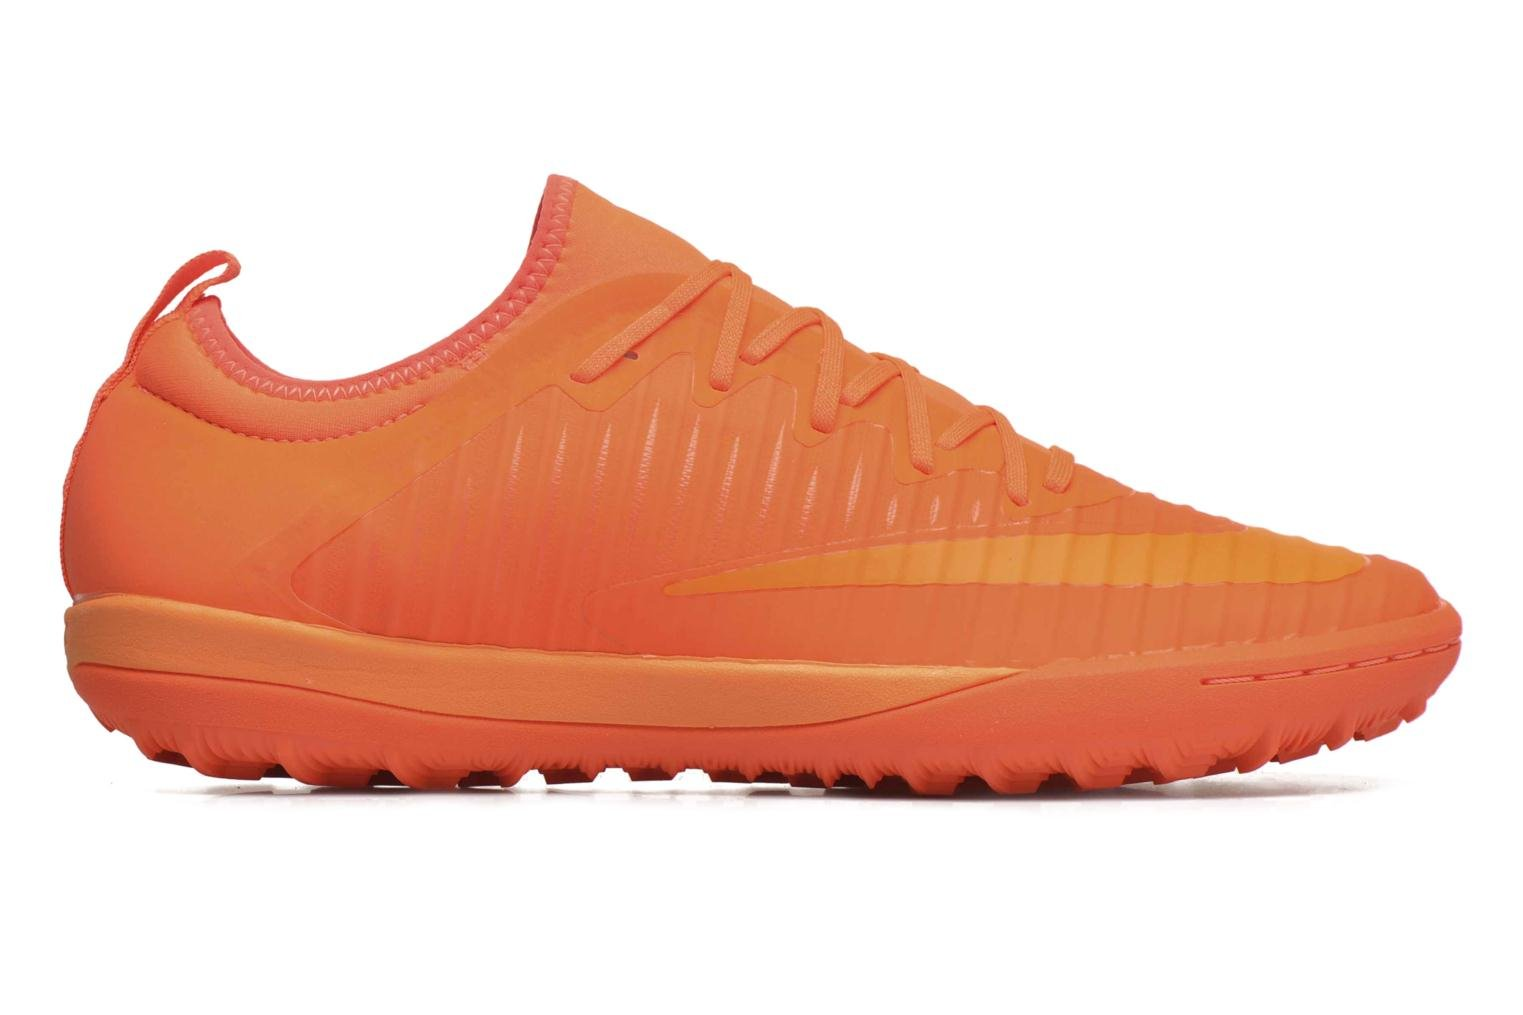 Mercurialx Finale Ii Tf Total Orange/Bright Citrus-Hyper Crimson